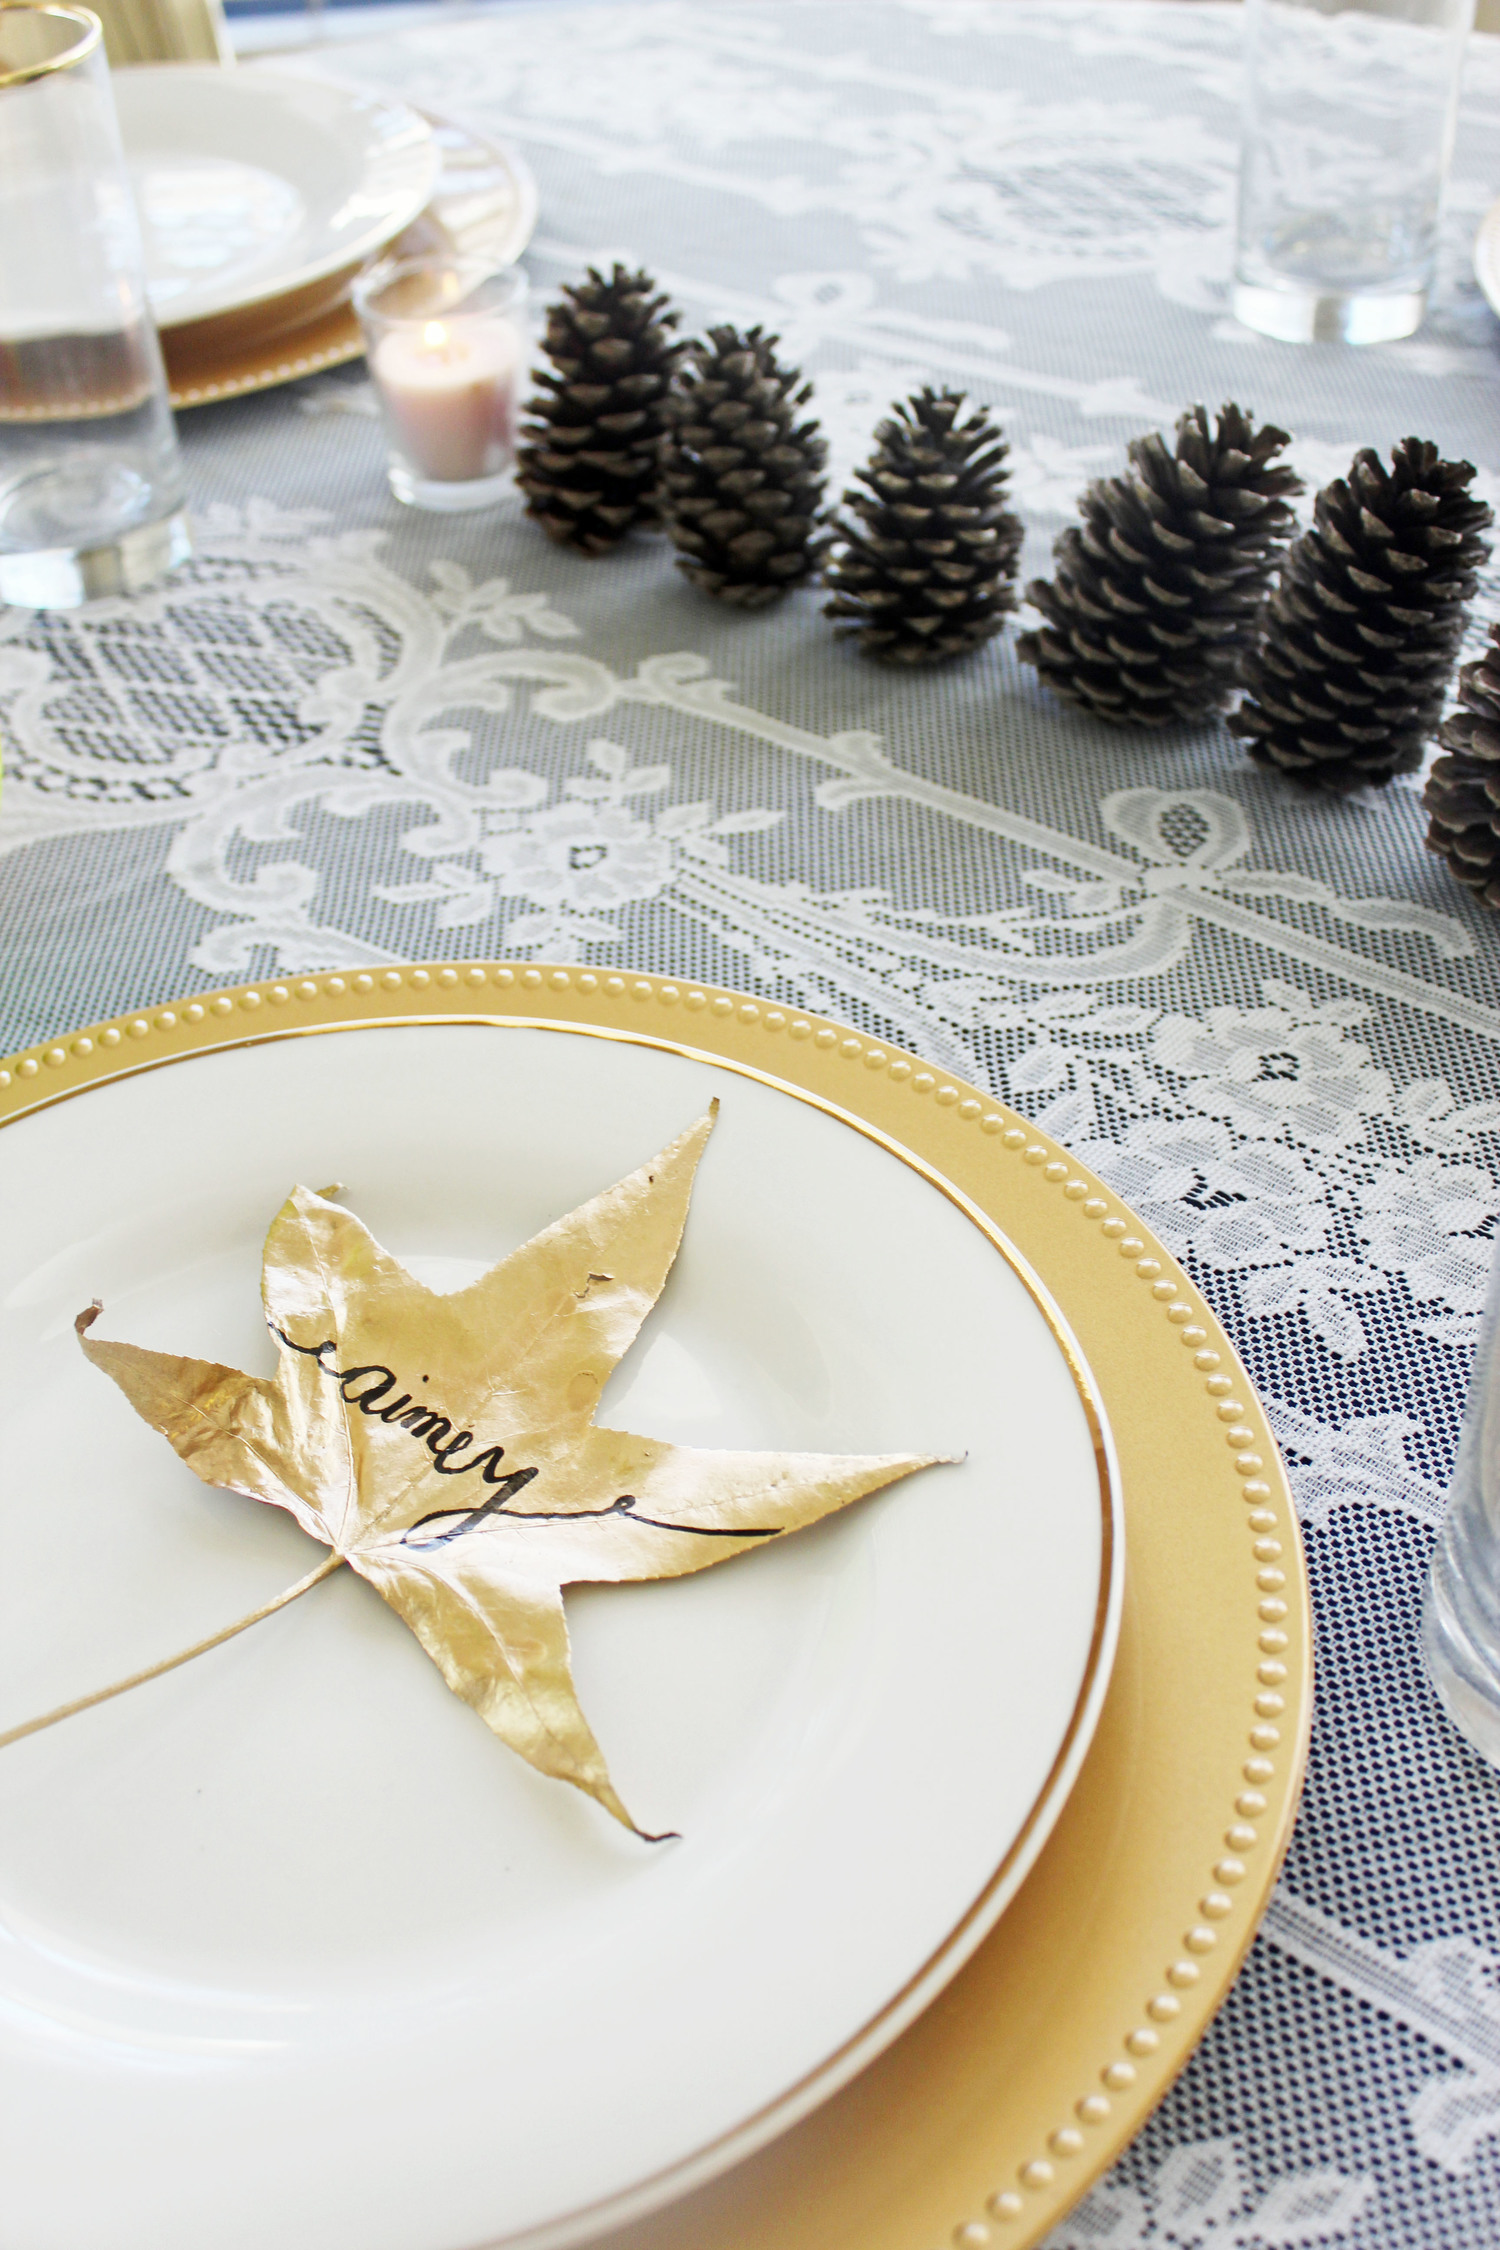 Gold Leaf Place Cards | Thanksgiving Table Settings And Decor Ideas To WOW Your Guests